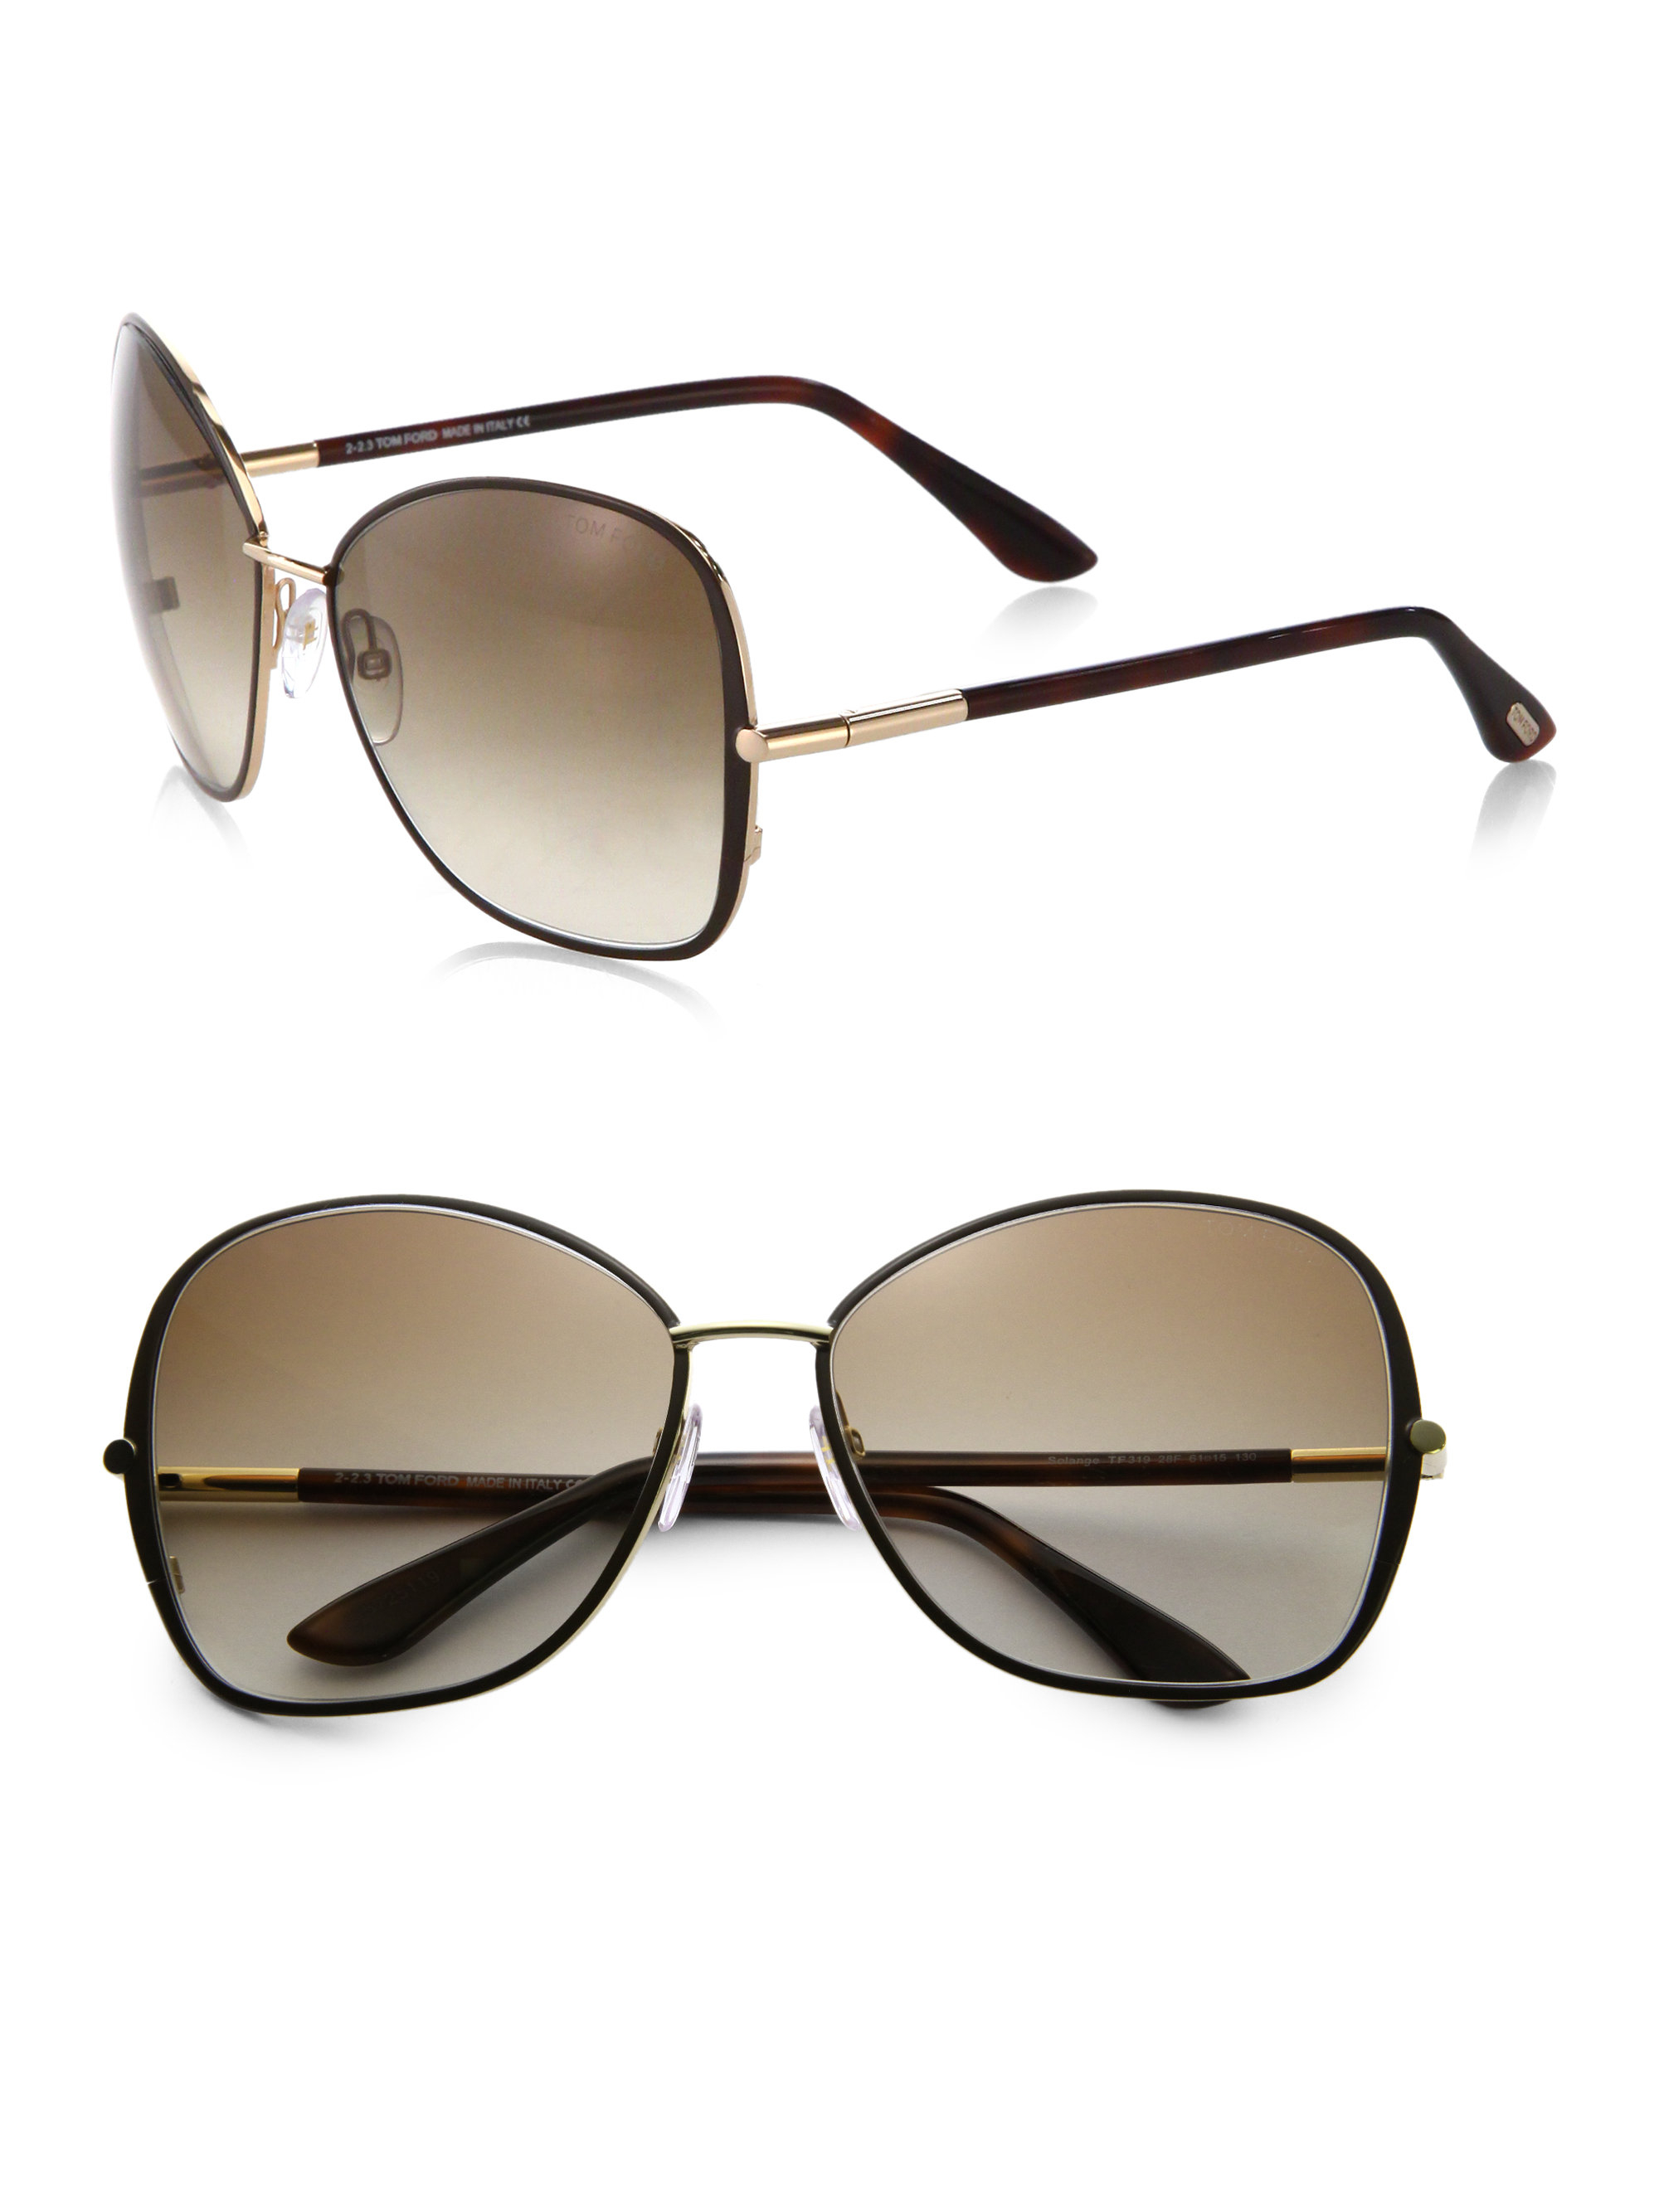 65cda967ab5 Lyst - Tom Ford Solange 61Mm Oversized Square Sunglasses in Brown